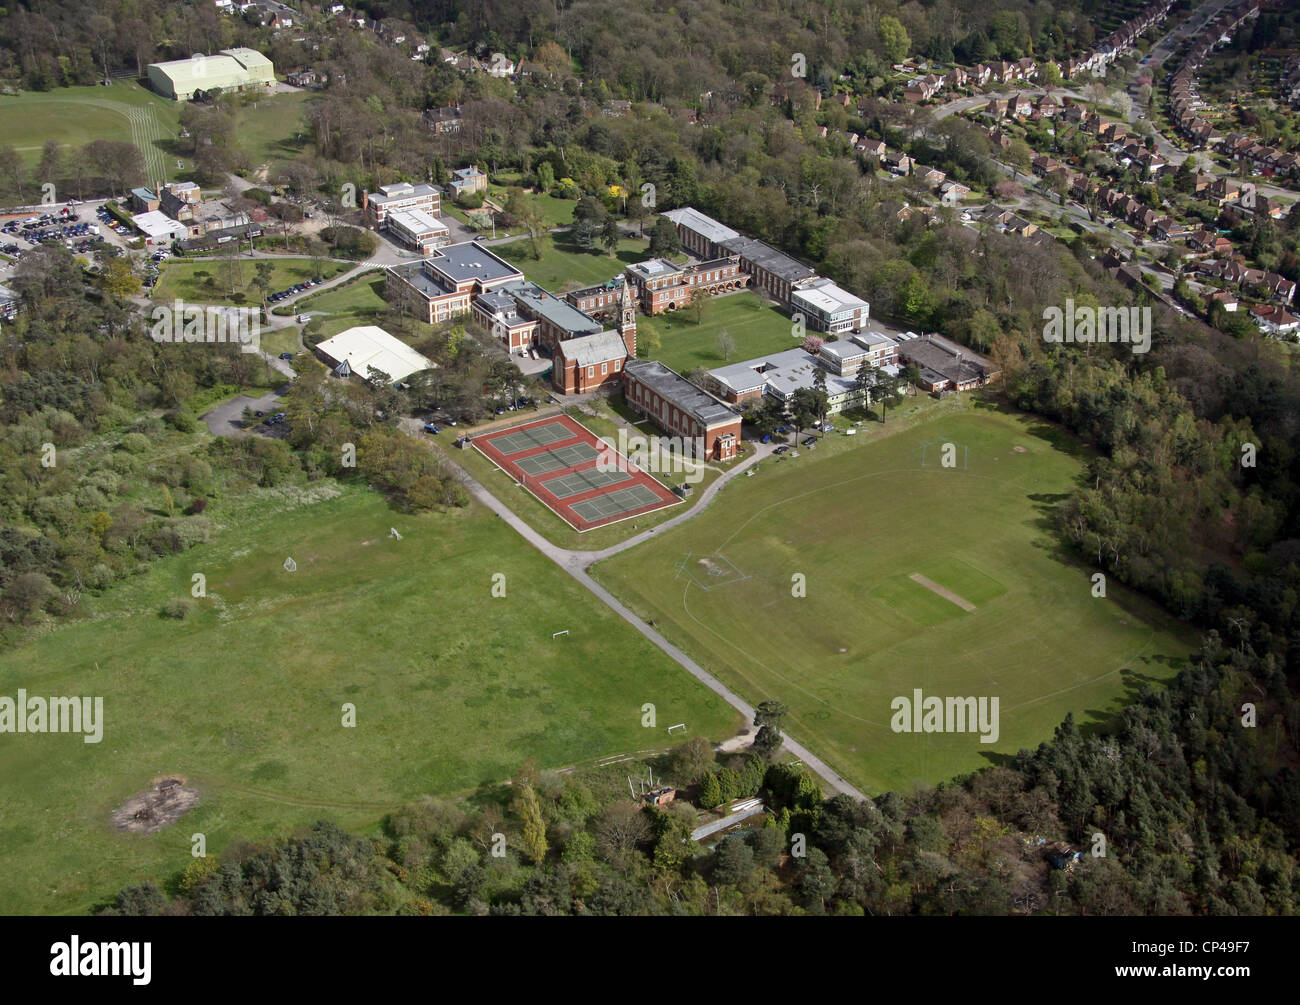 Aerial view of Royal Russell School, Croydon. - Stock Image